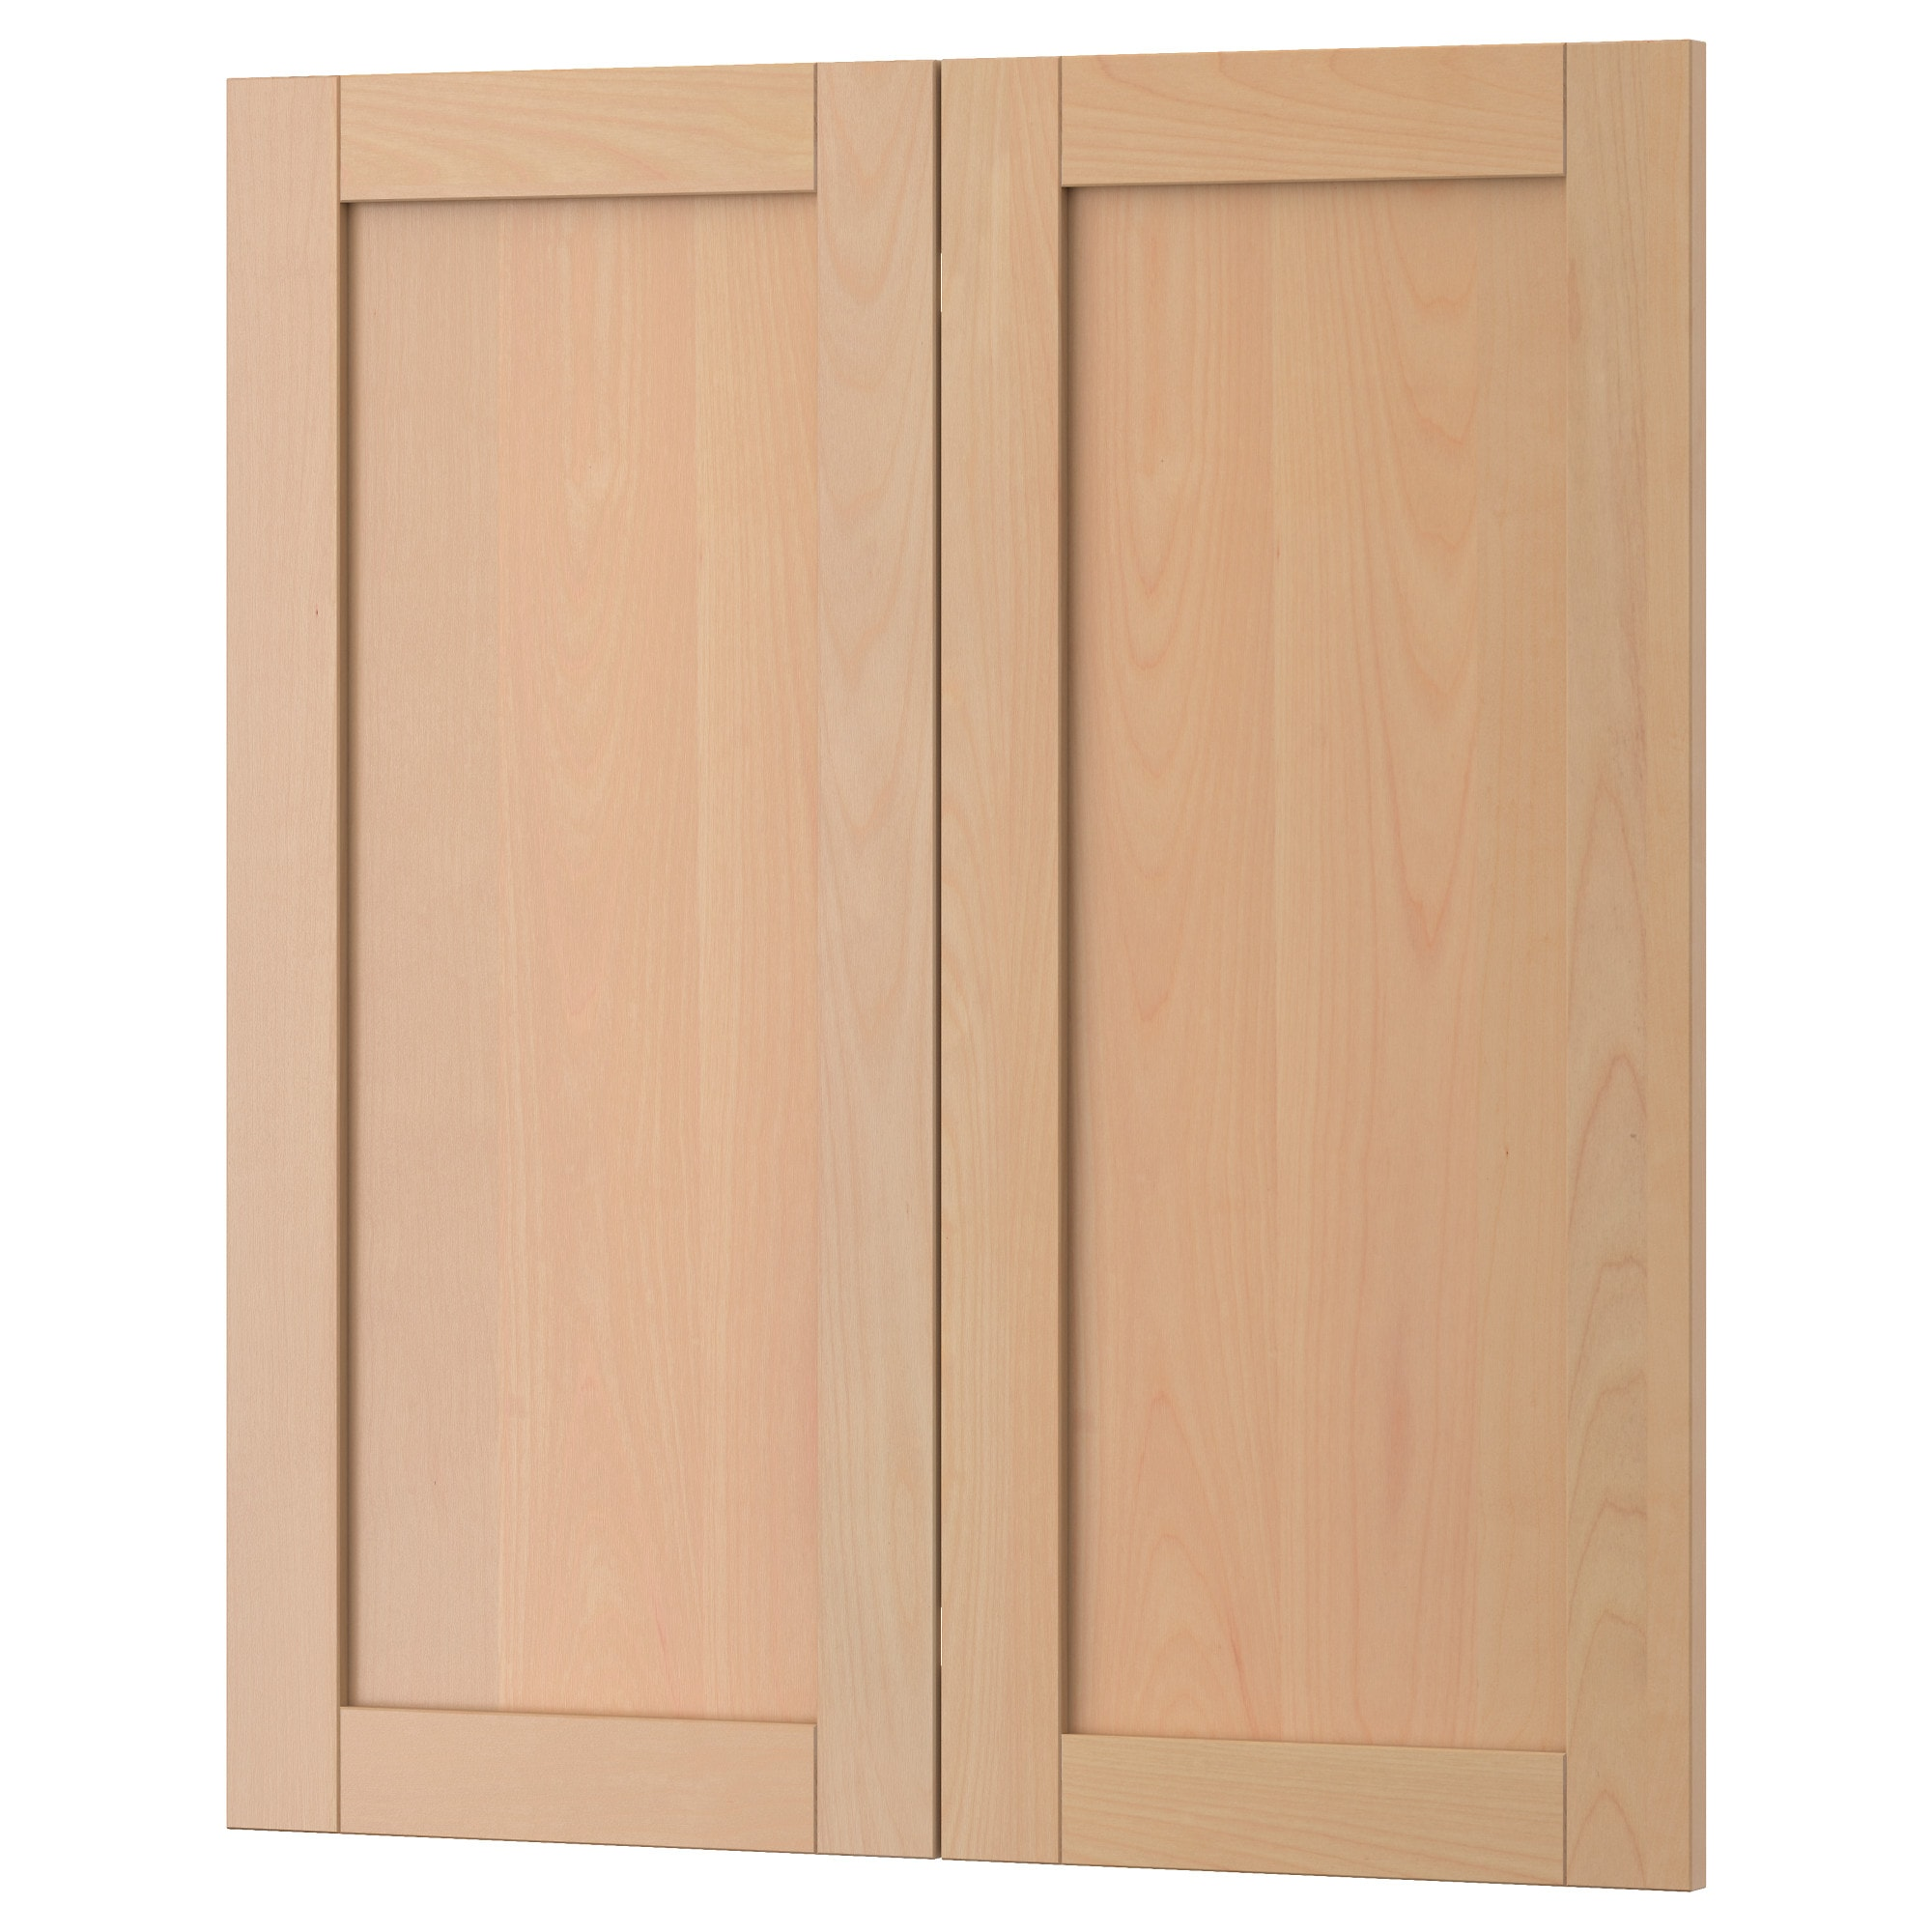 Ikea Kitchen Cabinet Doors And Drawers Roselawnlutheran